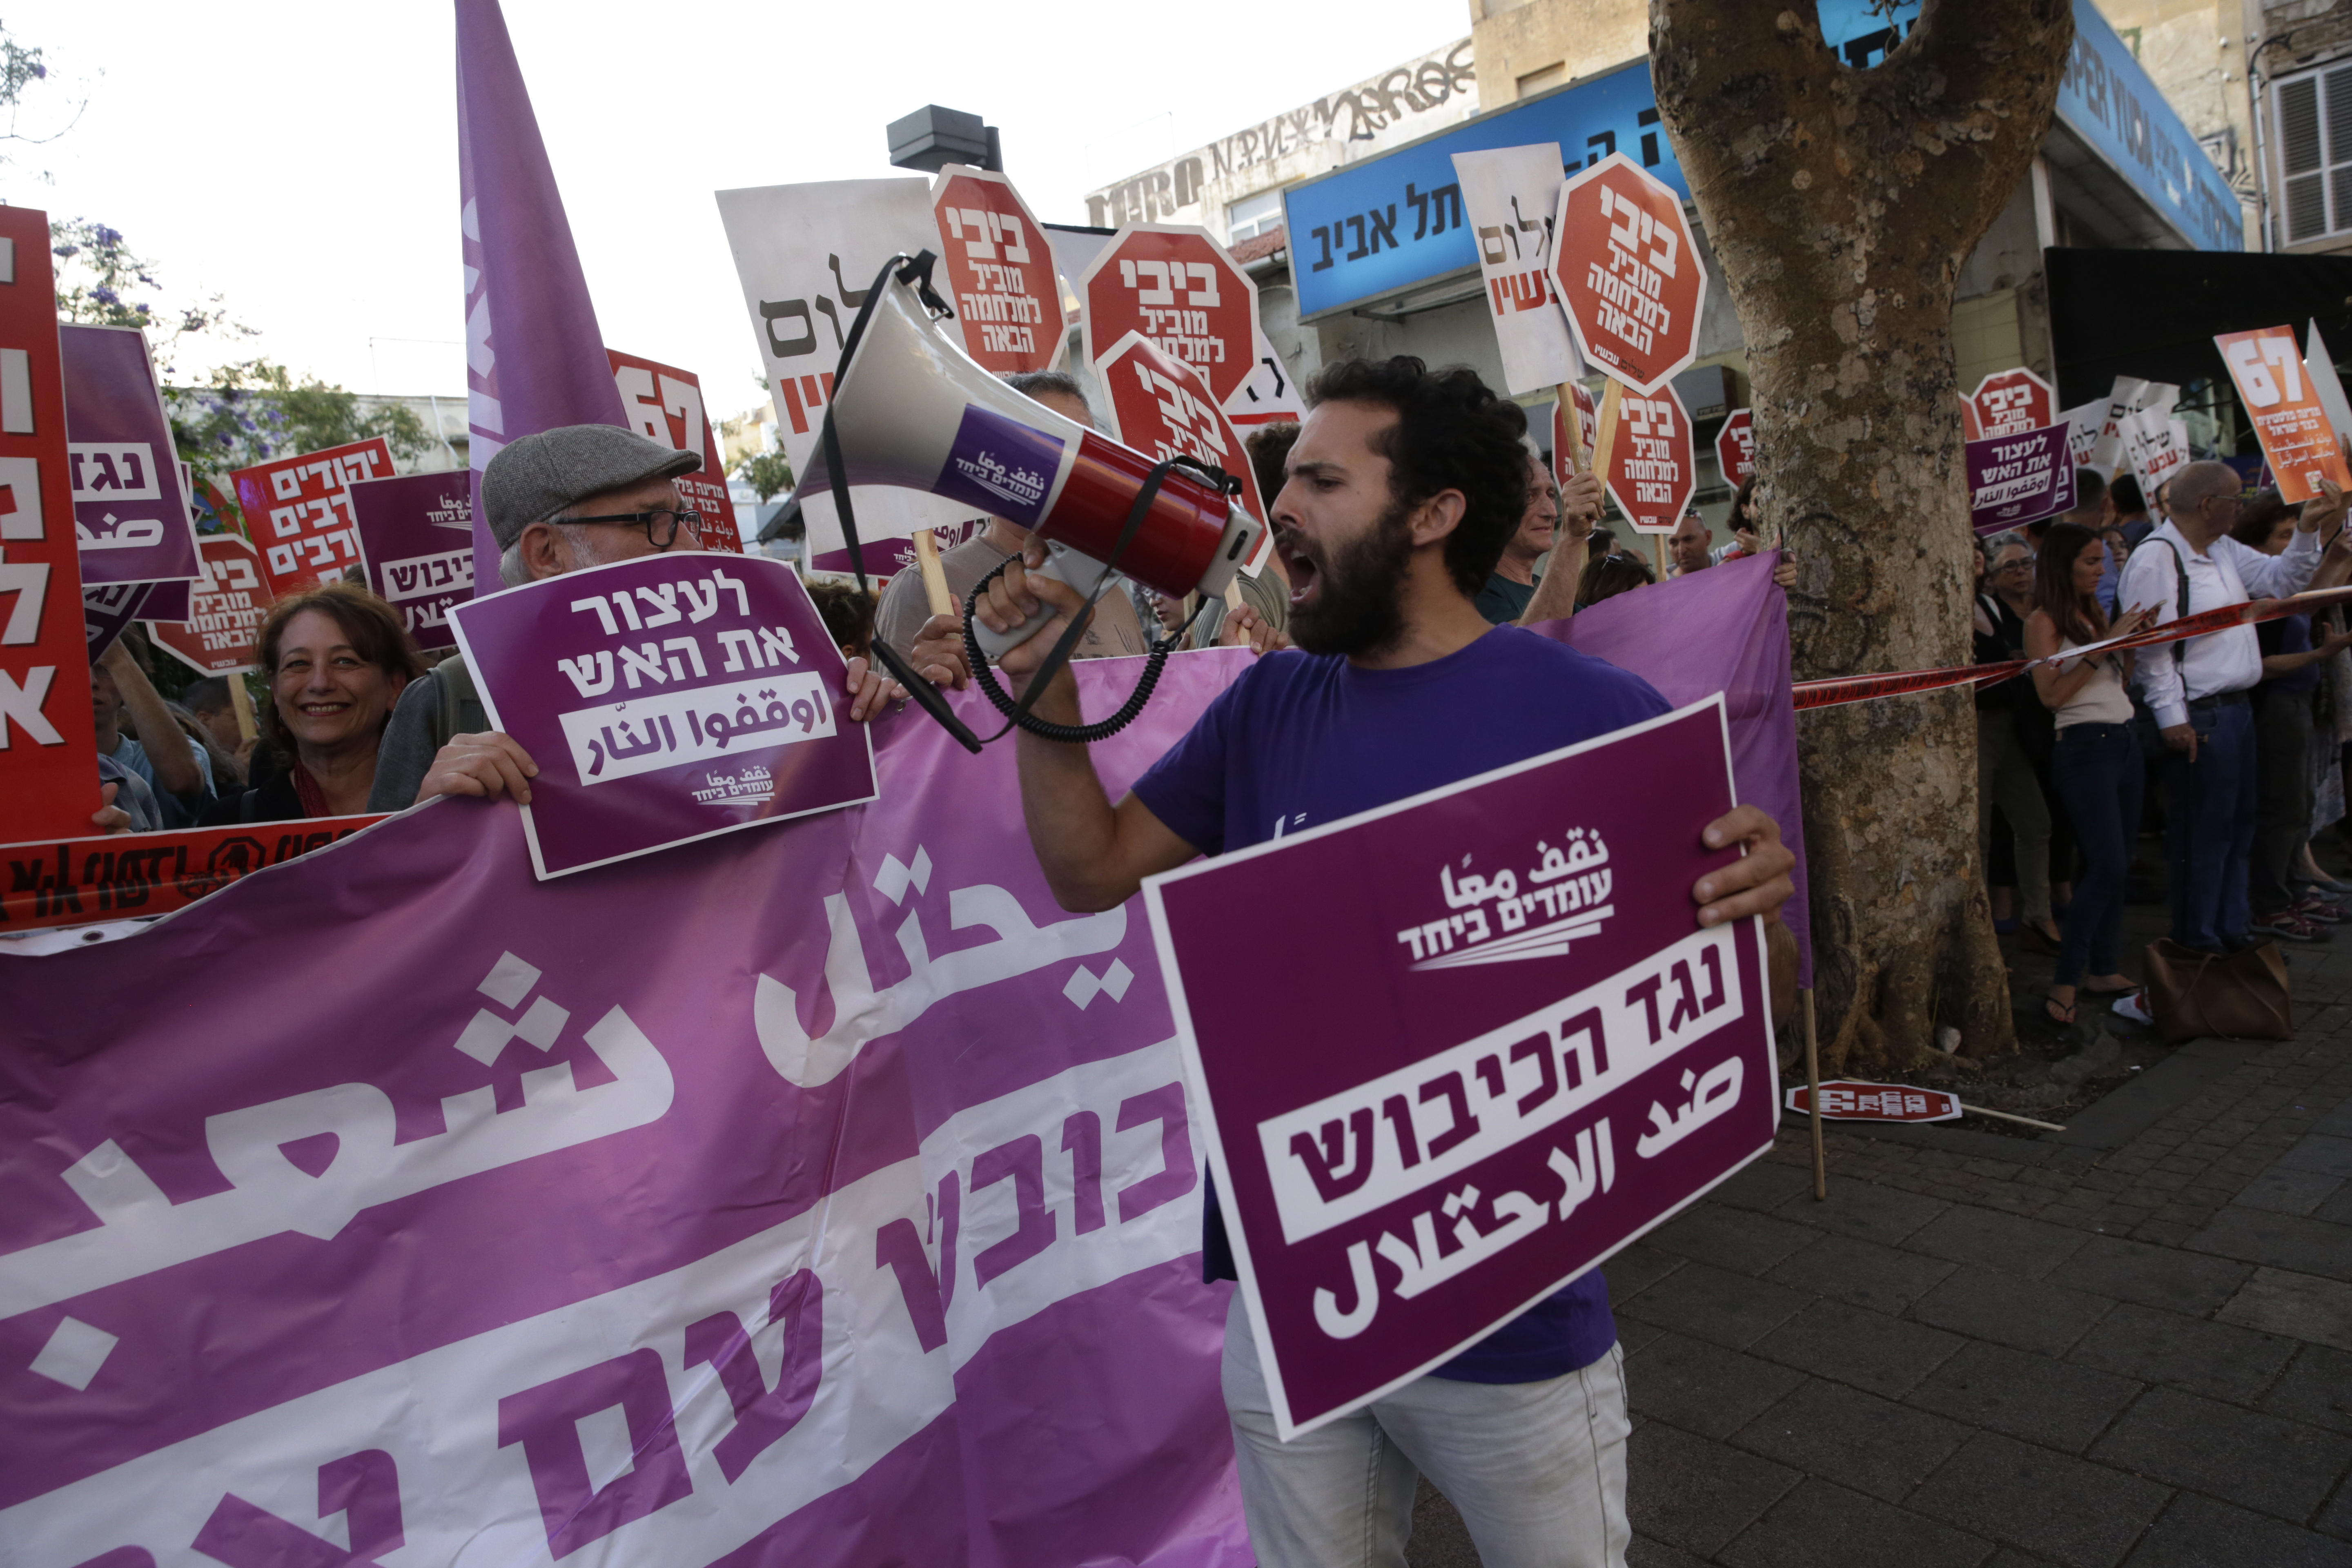 Left-wing Israelis hold signs during a demonstration against the situation in Gaza in Tel Aviv, Israel, Tuesday, May 15, 2018. Israel faced a growing backlash Tuesday and new charges of using excessive force, a day after Israeli troops firing from across a border fence killed 59 Palestinians and wounded more than 2,700 at a mass protest in Gaza. Hebrew signs read: